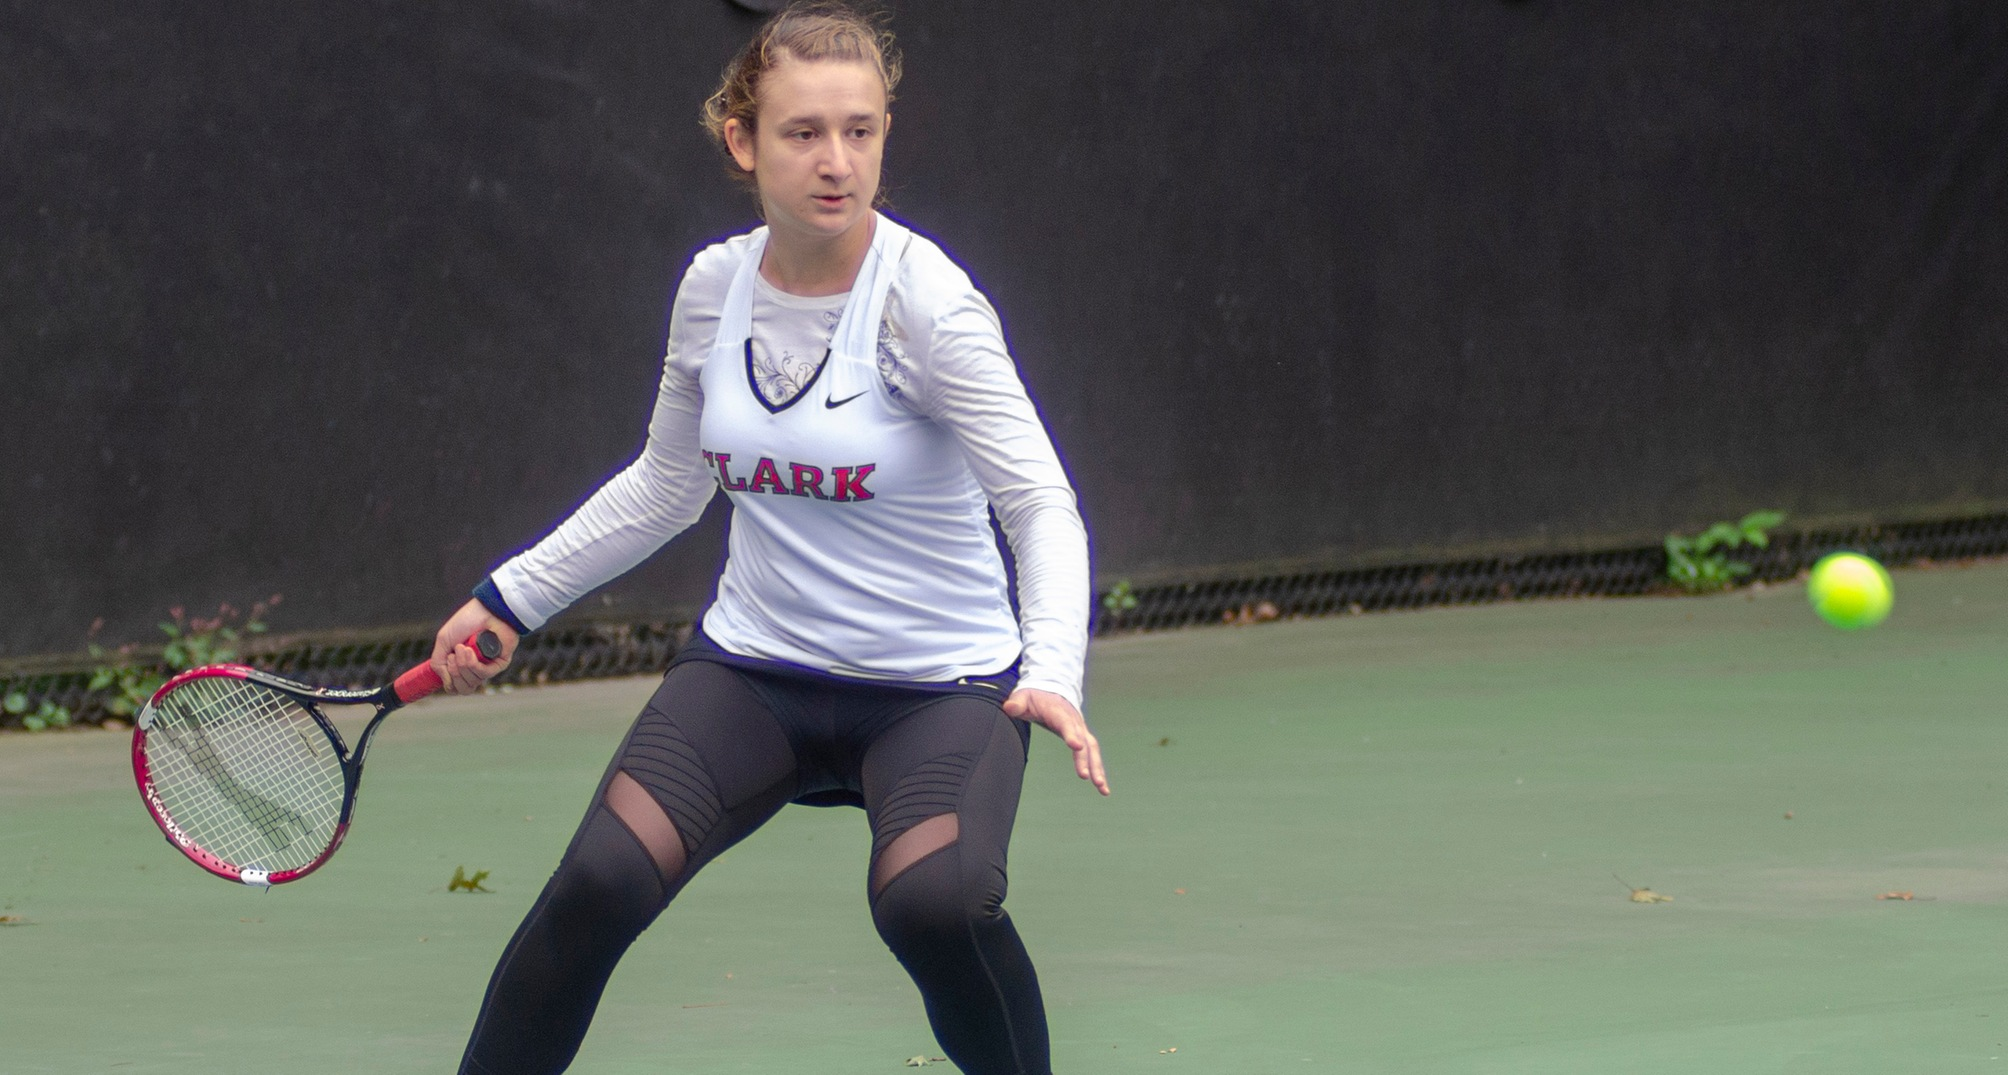 WTEN: Cougars Downed by Pride, 8-1